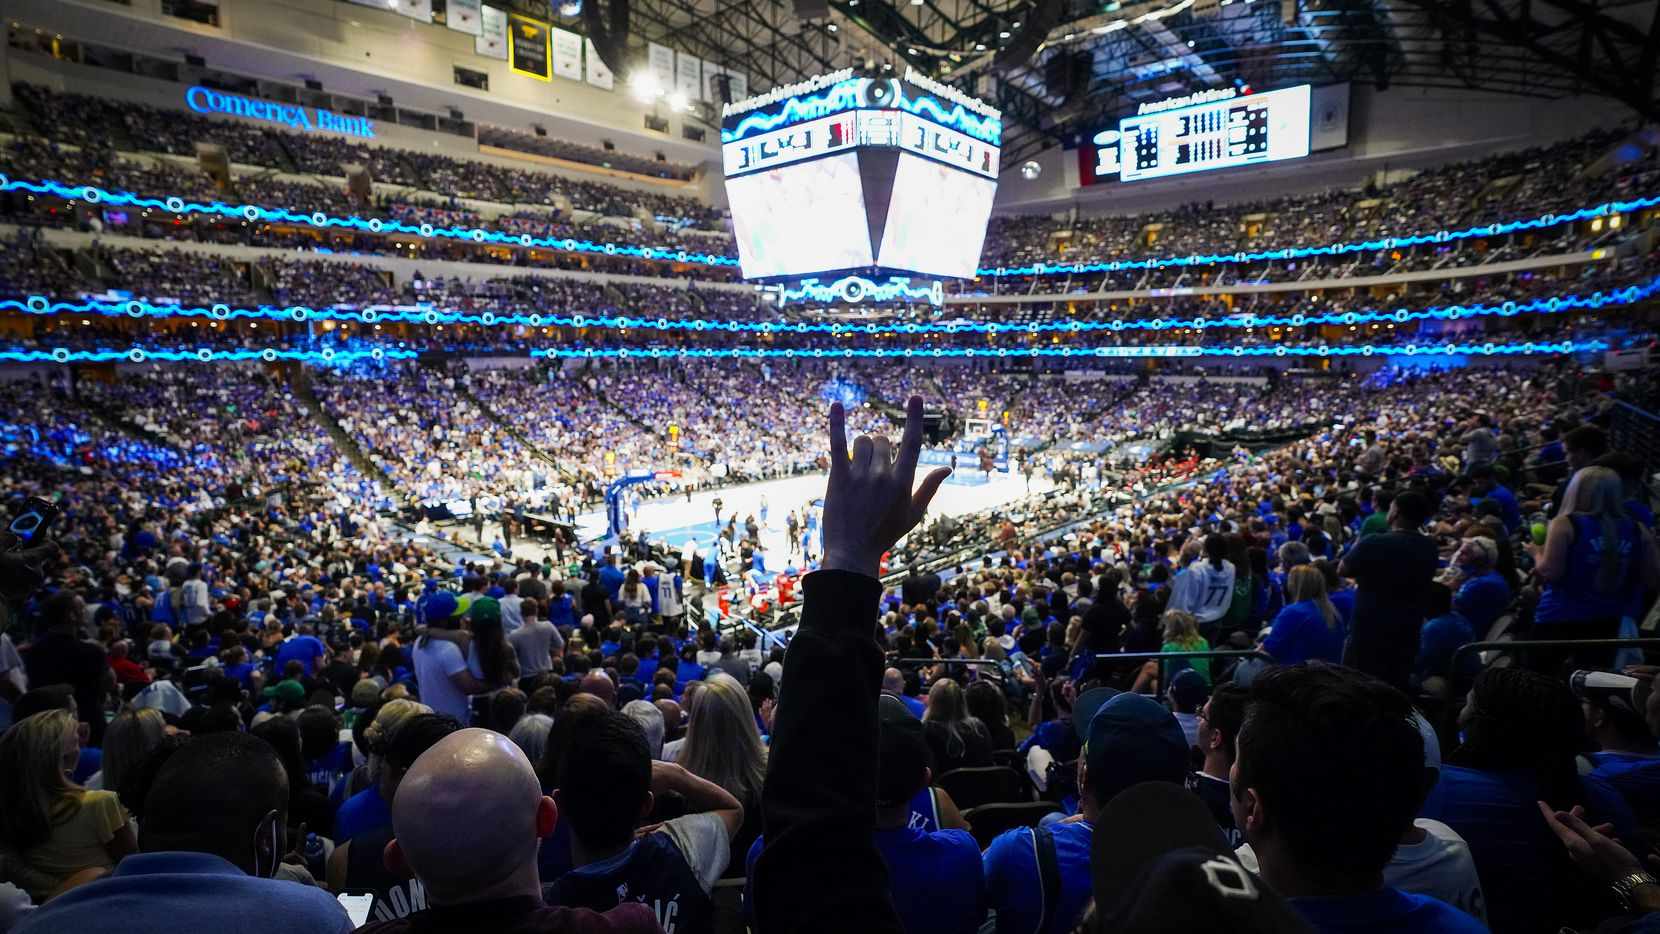 Dallas Mavericks fans cheer a basket during the first half of an NBA playoff basketball game at the American Airlines Center on Friday, June 4, 2021, in Dallas.